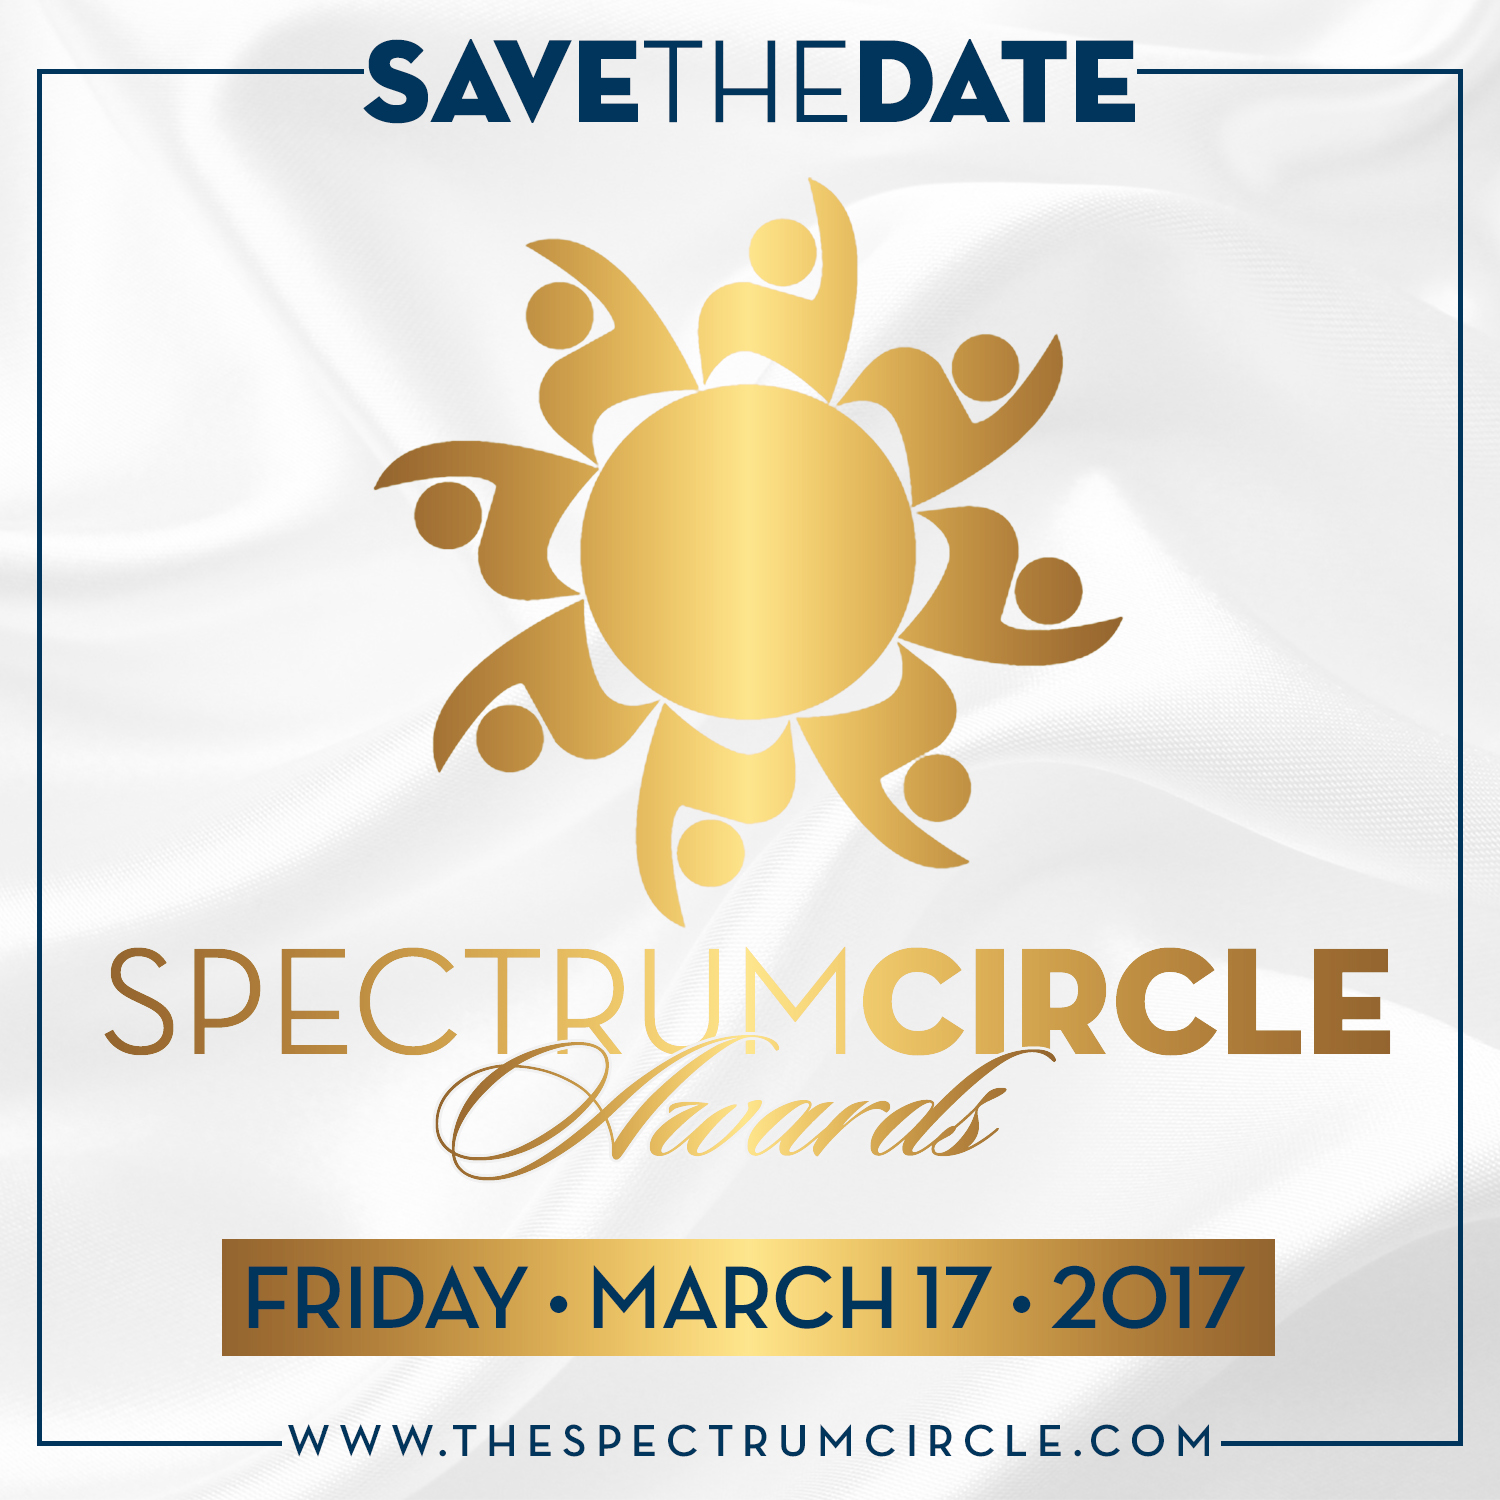 2017 Spectrum Circle Awards, Save the Date Flyer